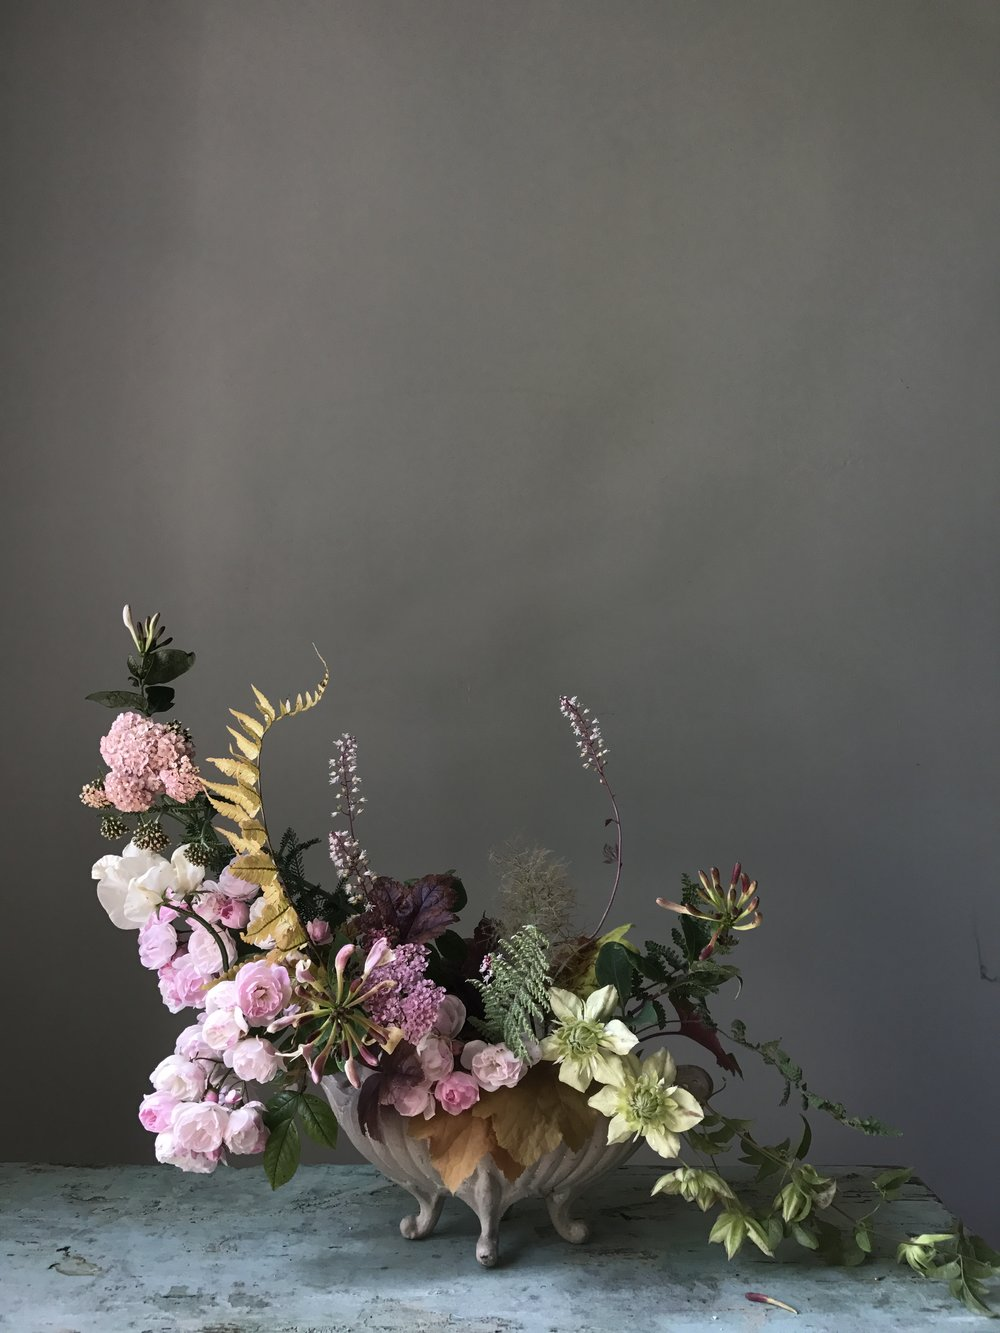 Image and Flowers: Fiona Pickles of Firenza Flowers